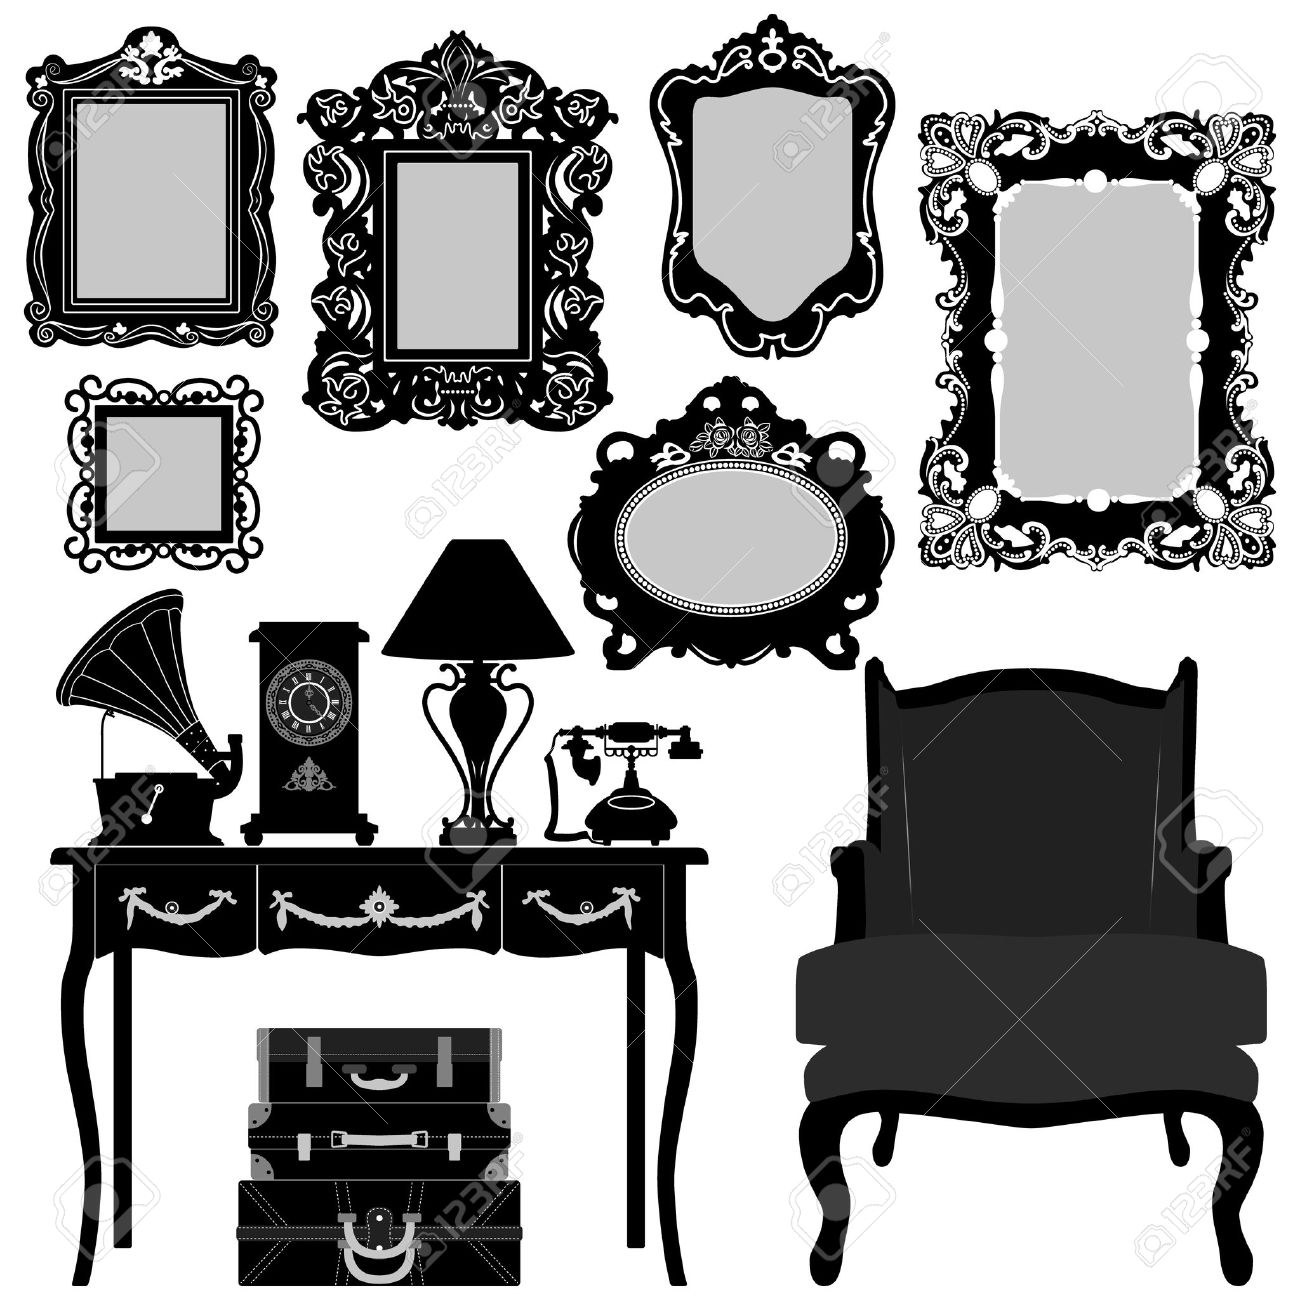 Antique chair silhouette - Vintage Furniture Antique Picture Frame Ornate Vintage Retro Museum Object Furniture